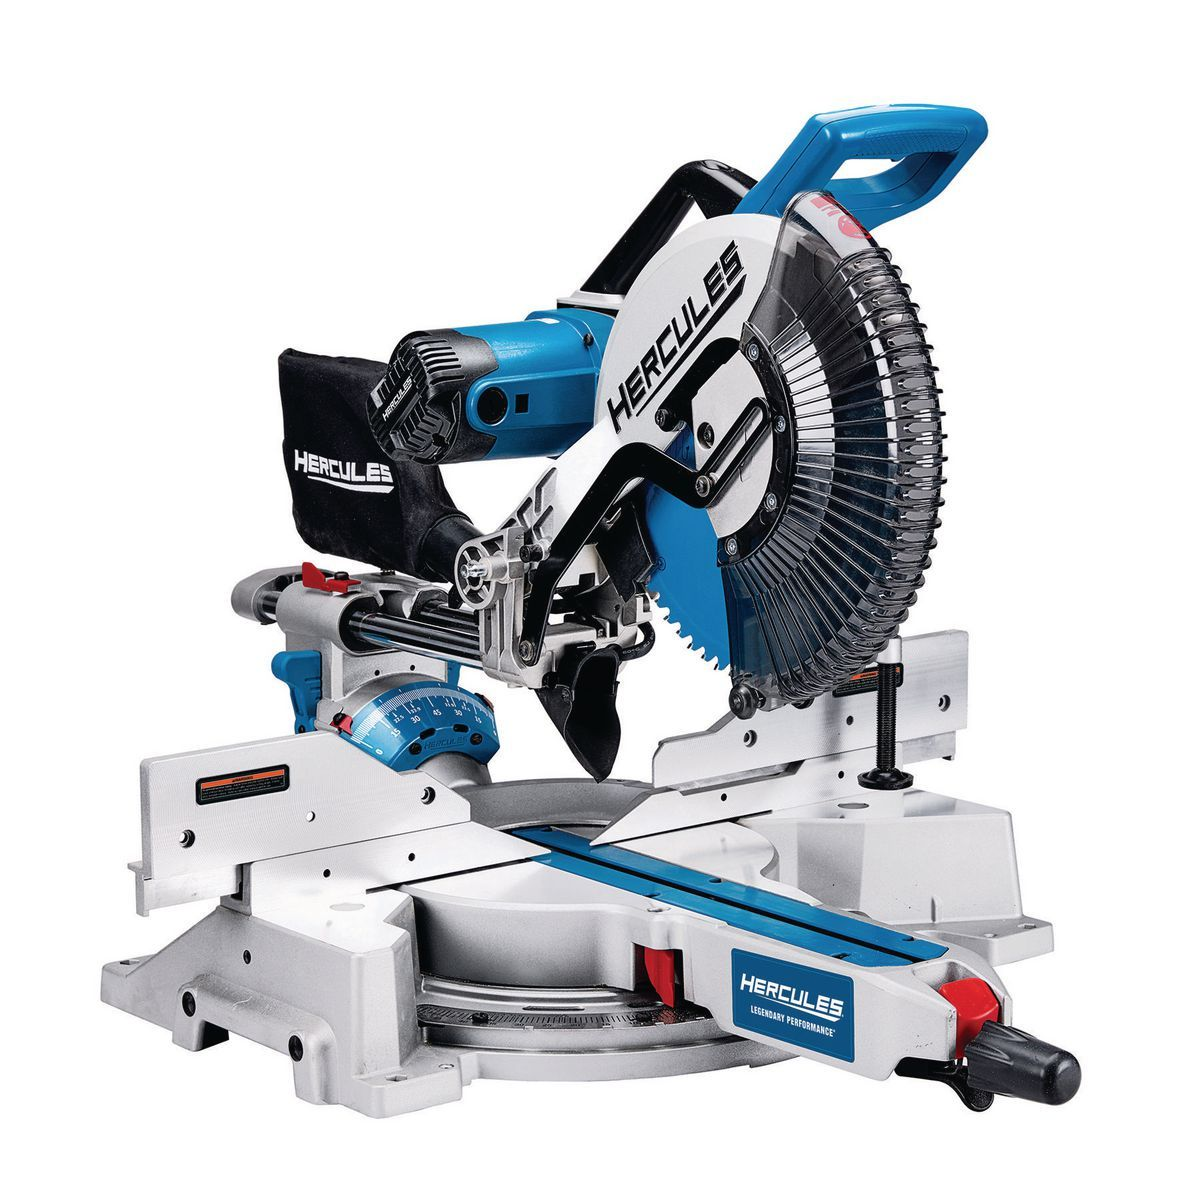 12 In Dual Bevel Sliding Compound Miter Saw With Precision Led Shadow Guide Thing 1 Herramientas De Carpinteria Herramientas